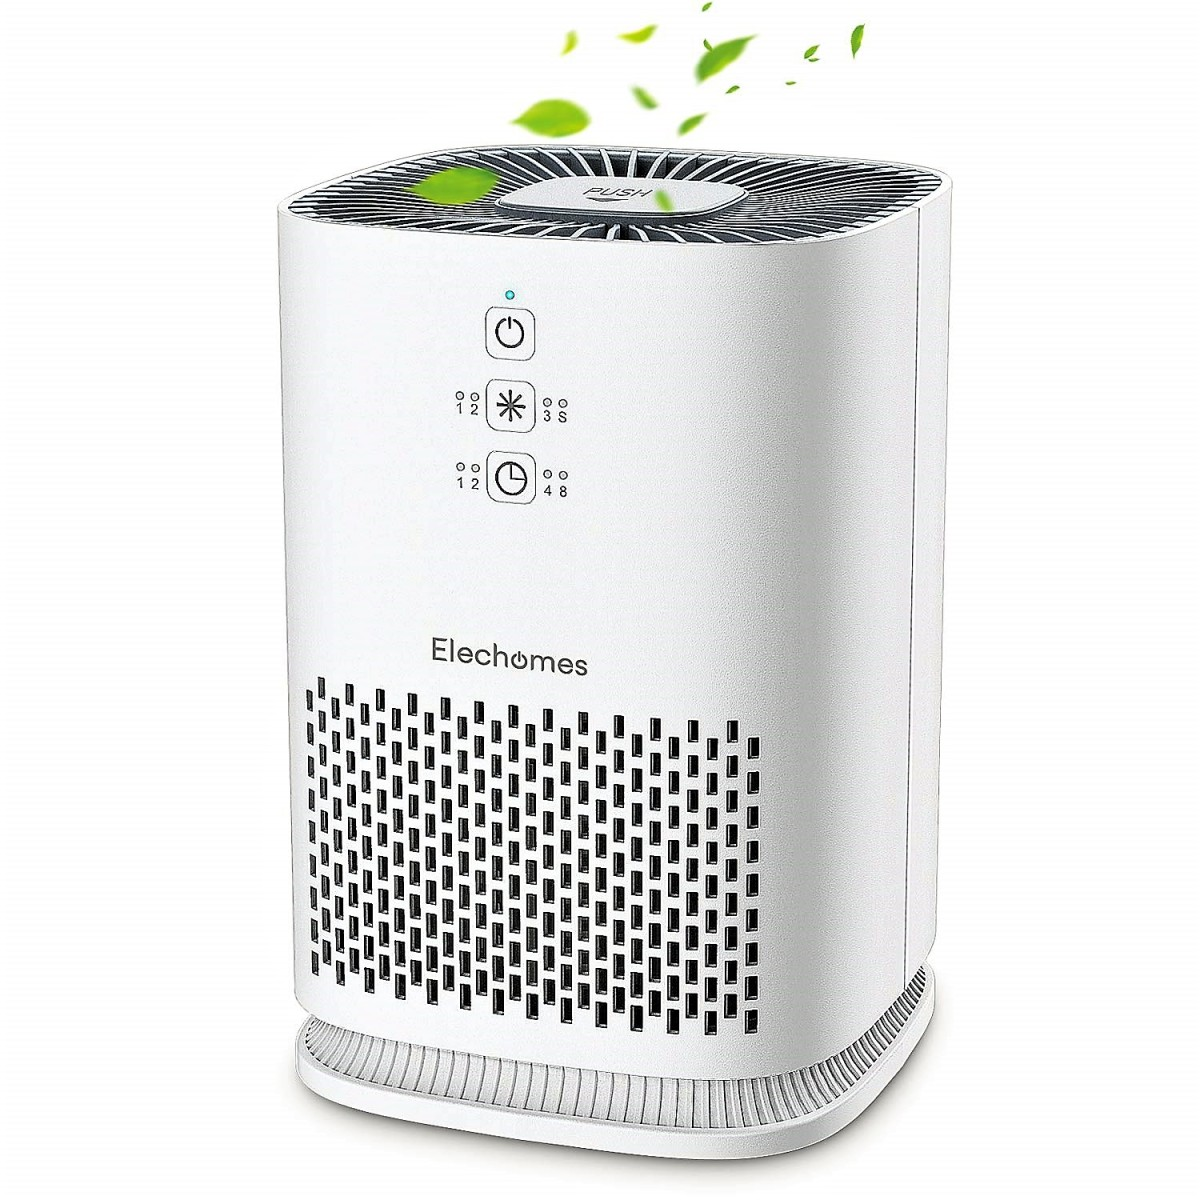 Elechomes Air Purifier